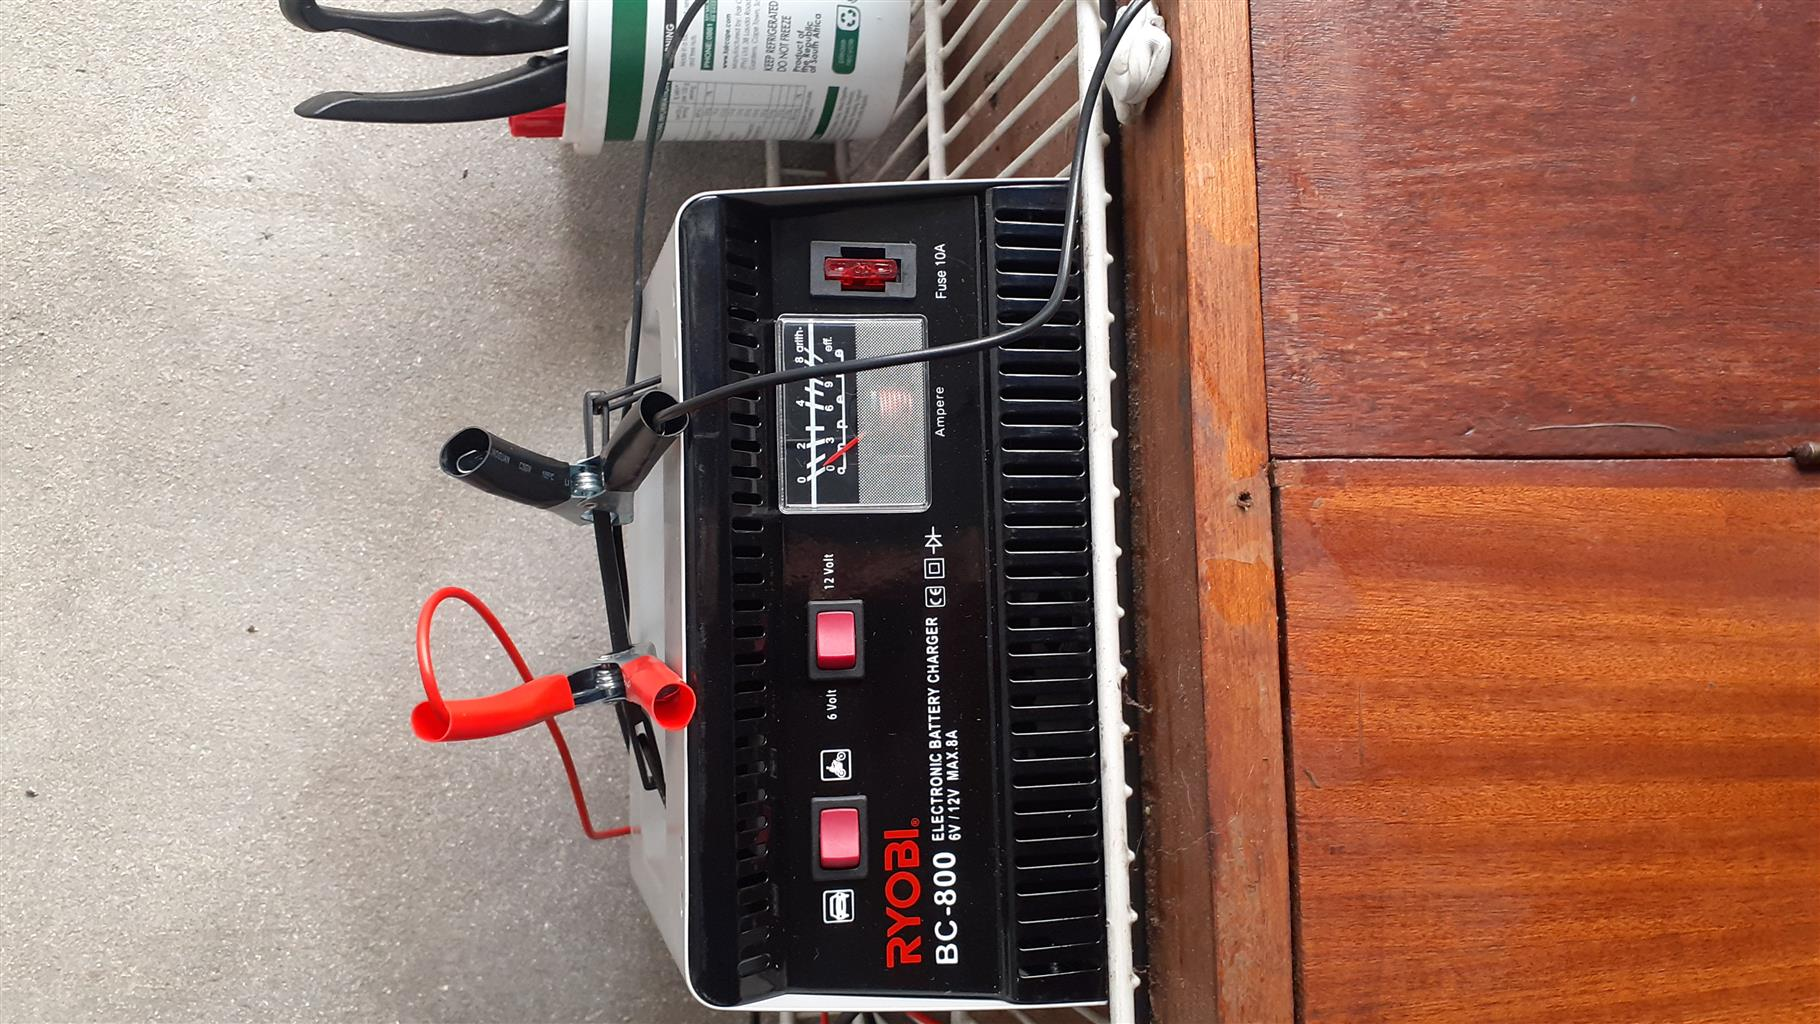 Battery repair maintenance and service all 6v and 12v batteries  satisfaction GIARANTEED